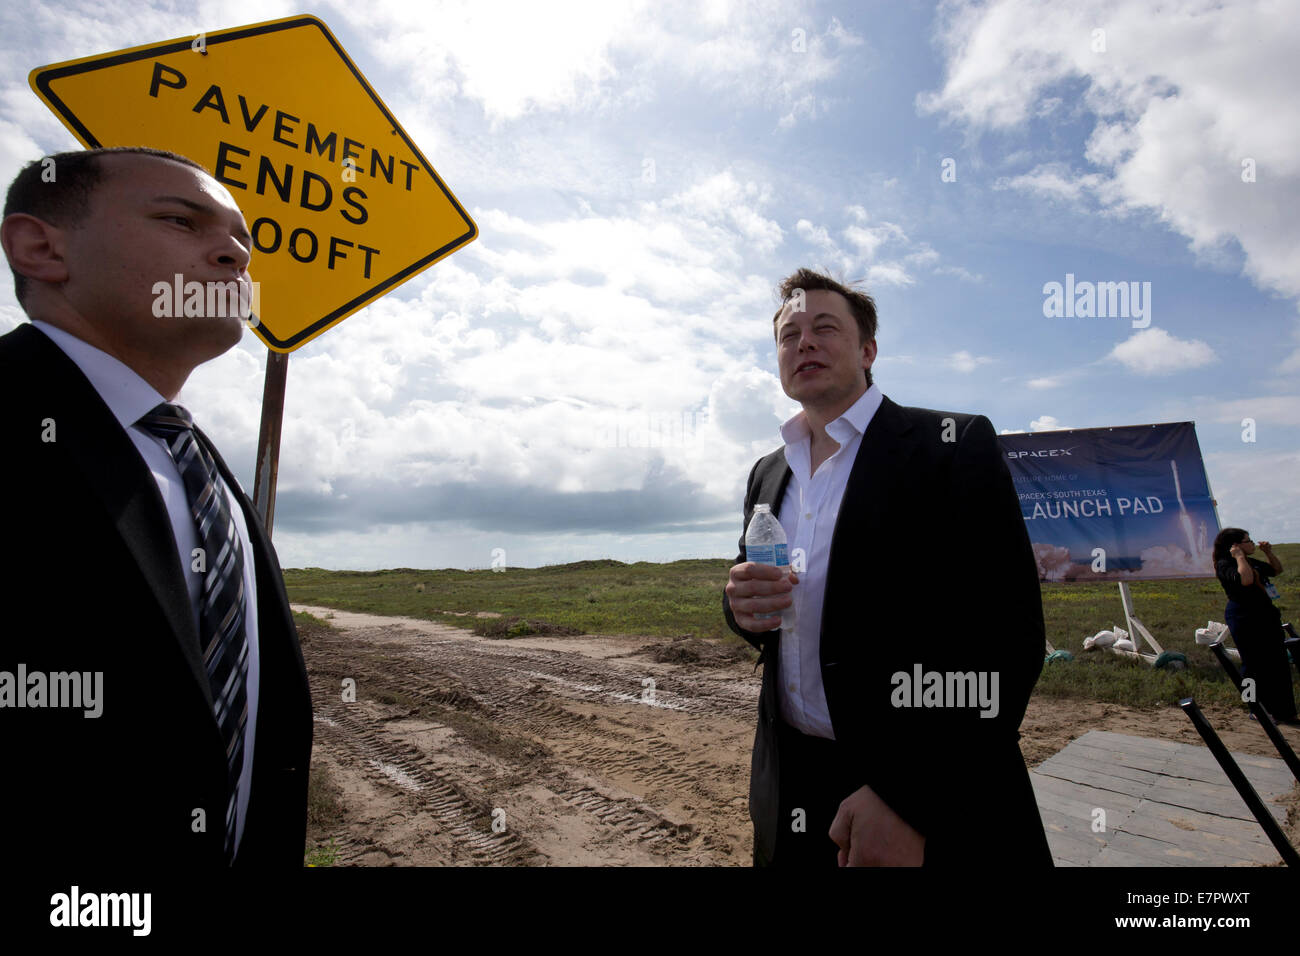 Boca Chica, Texas USA. 22nd Sep, 2014.  Elon Musk helps break ground on the Boca Chica, Texas site of its new space - Stock Image